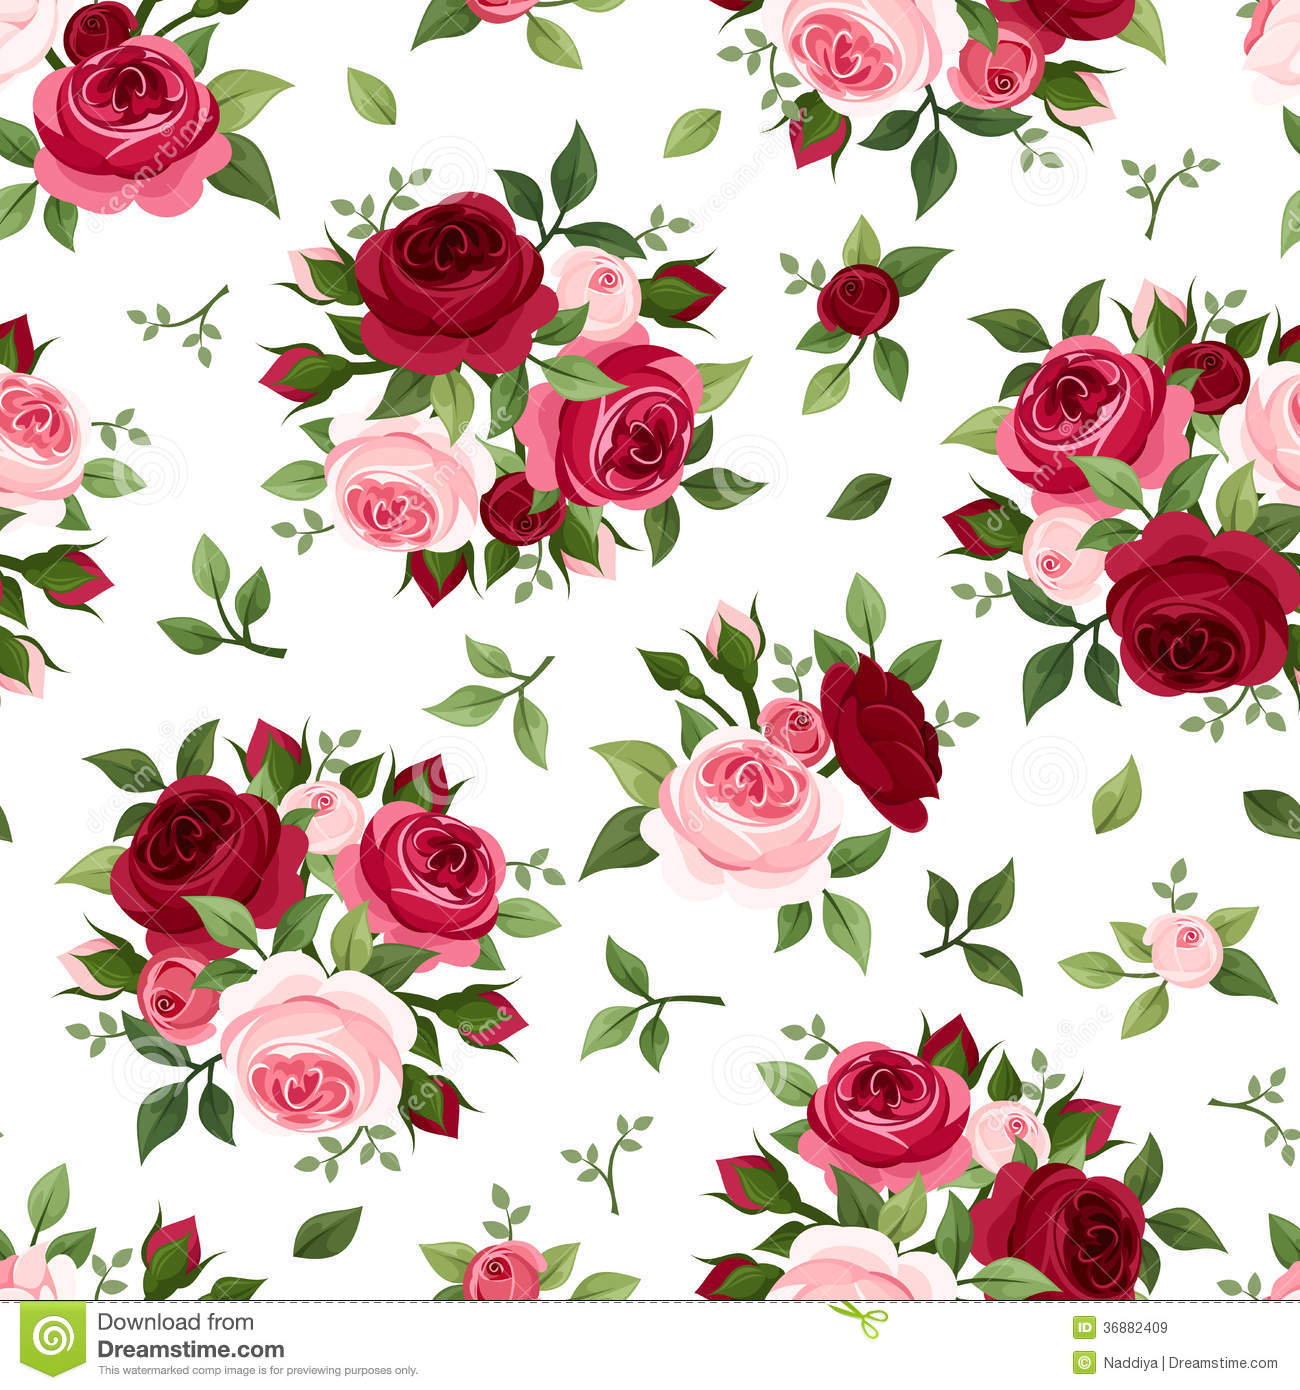 Pink vintage rose pattern Seamless Royalty Free Vector Image |Vintage Floral Rose Pattern